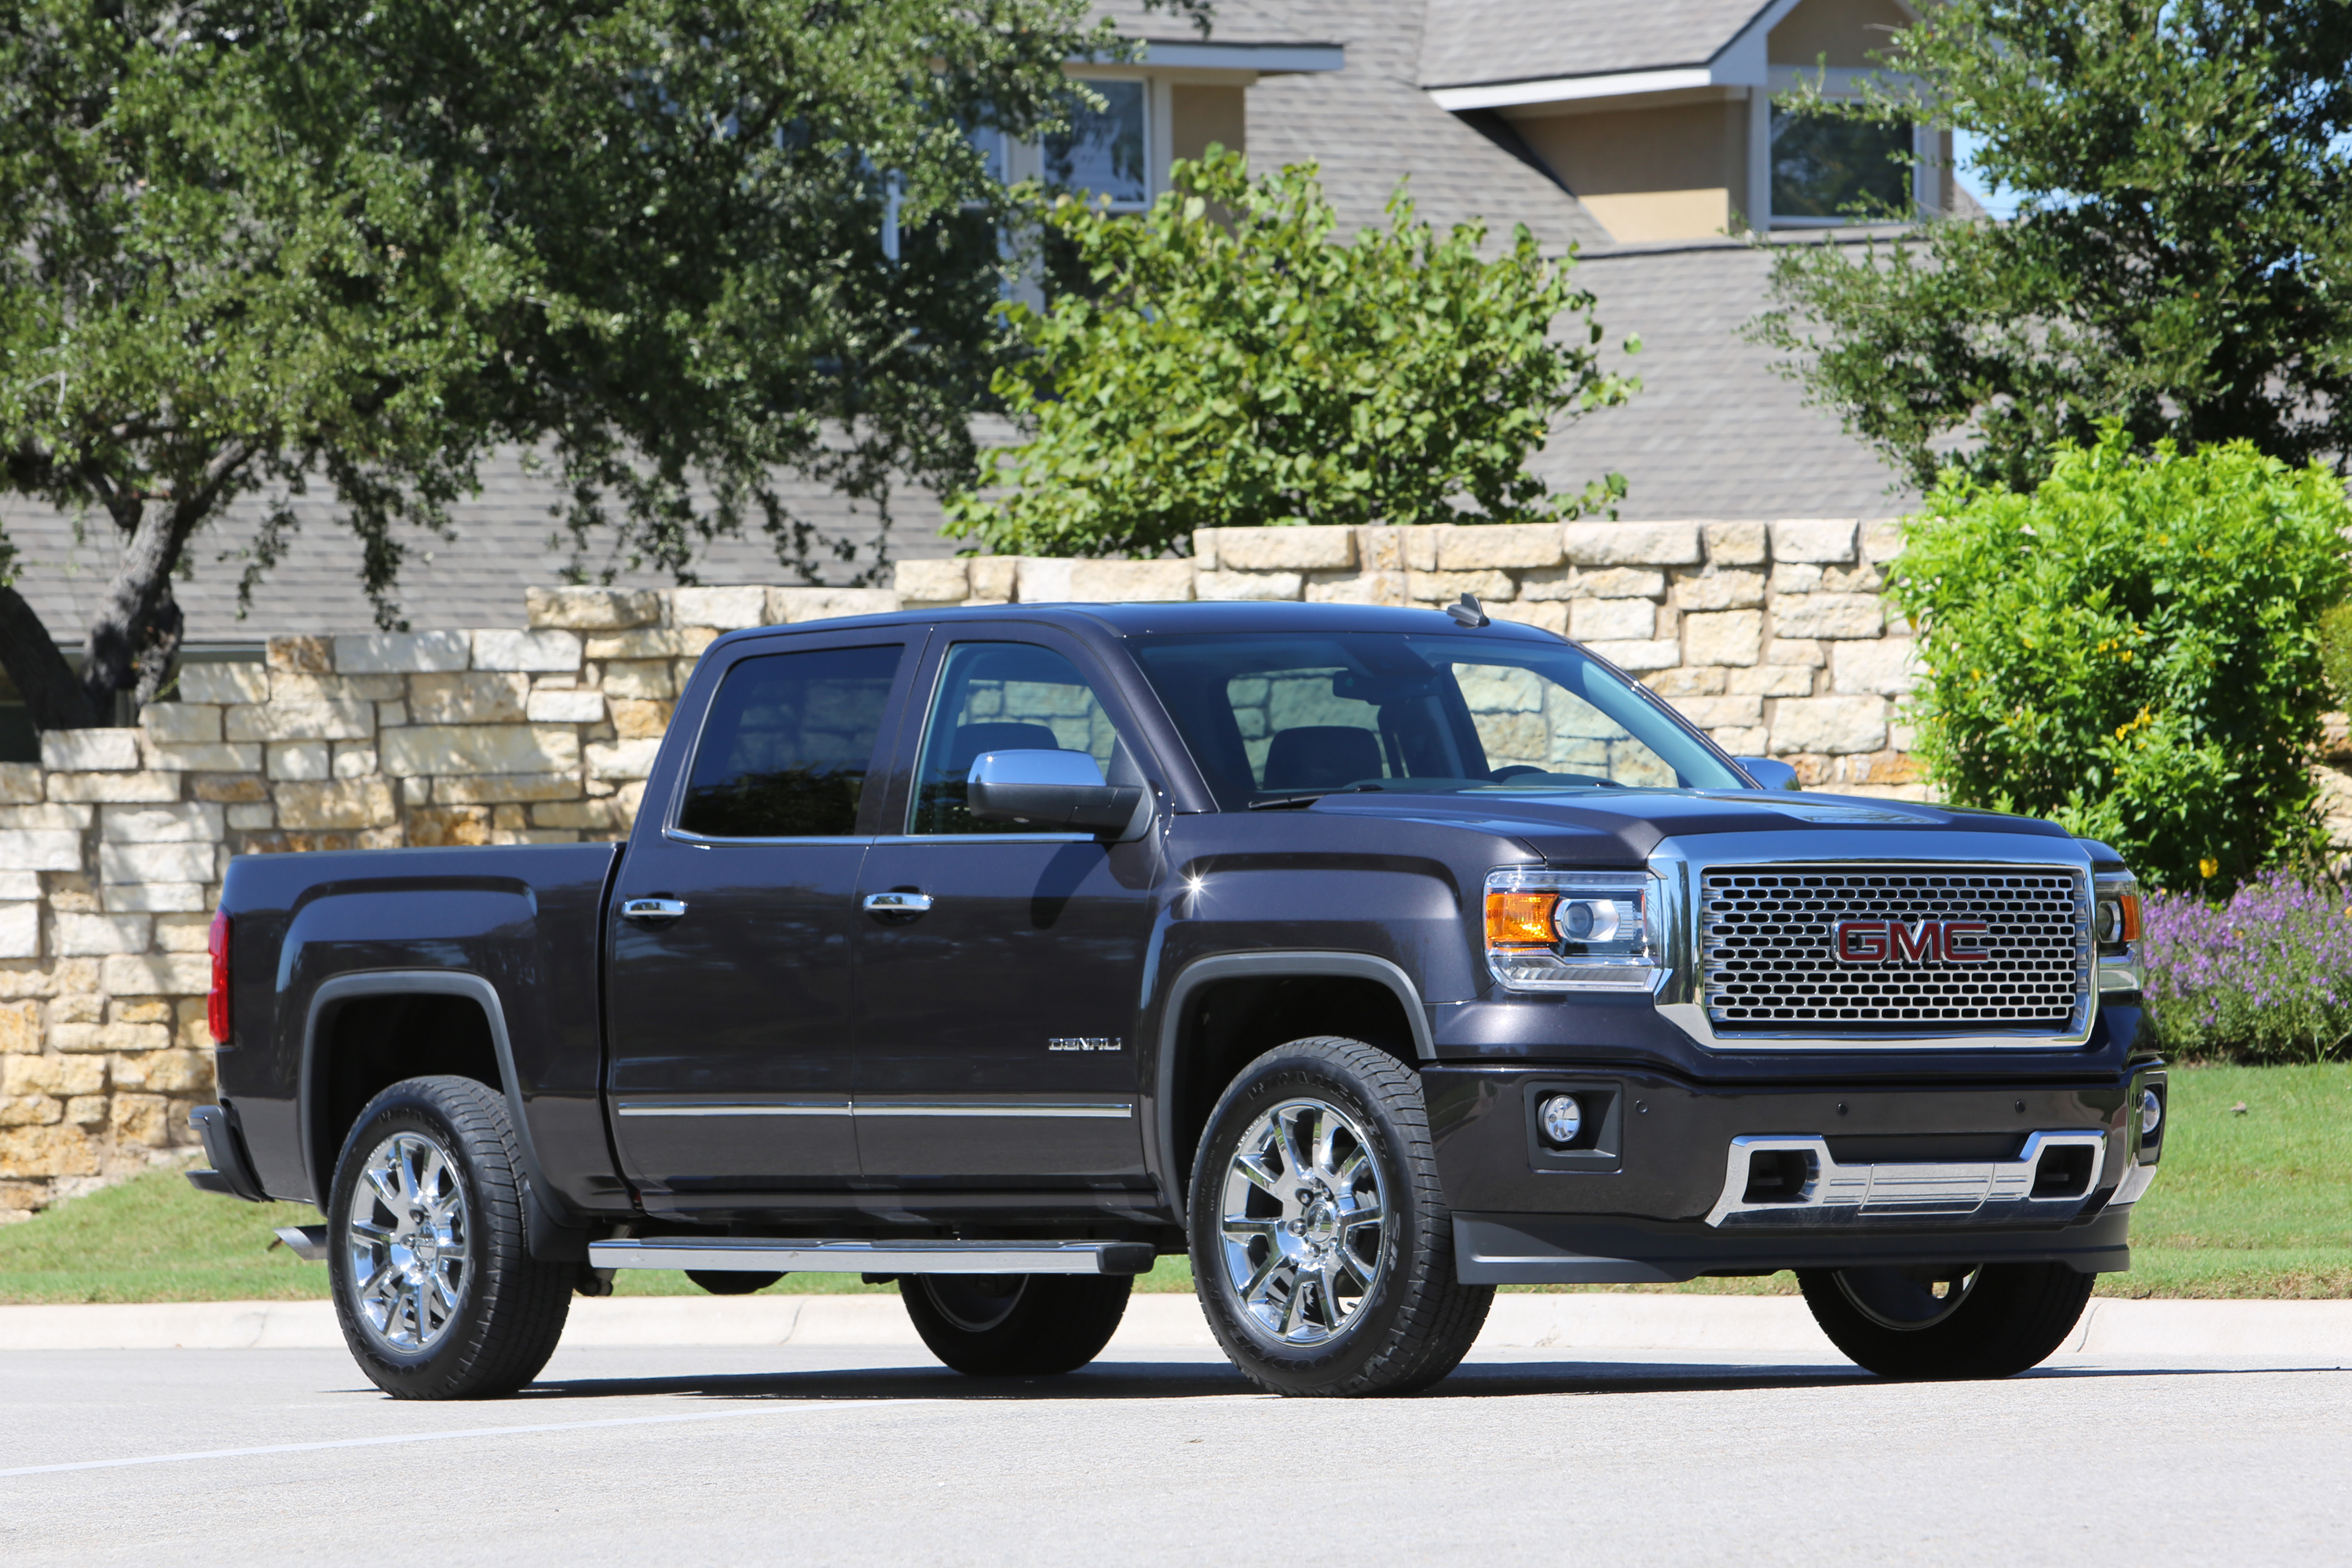 daily luxury gmc silverado the denali range sierra meet consumer gets topping guide high sibling chevy country a drive